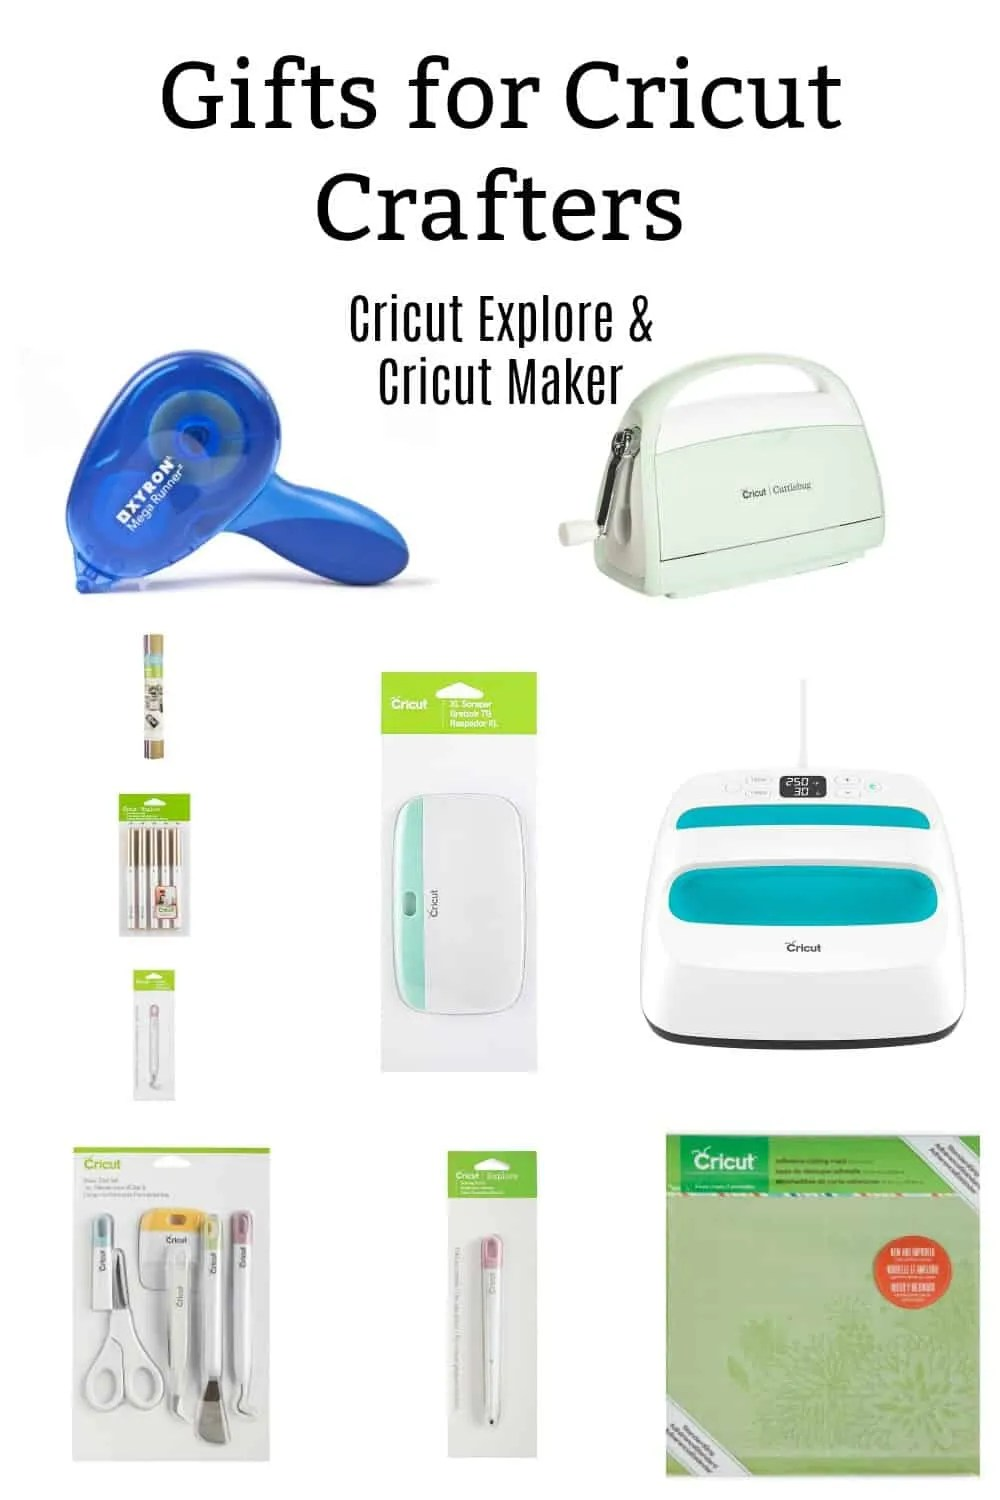 Gift Ideas For Cricut Crafter